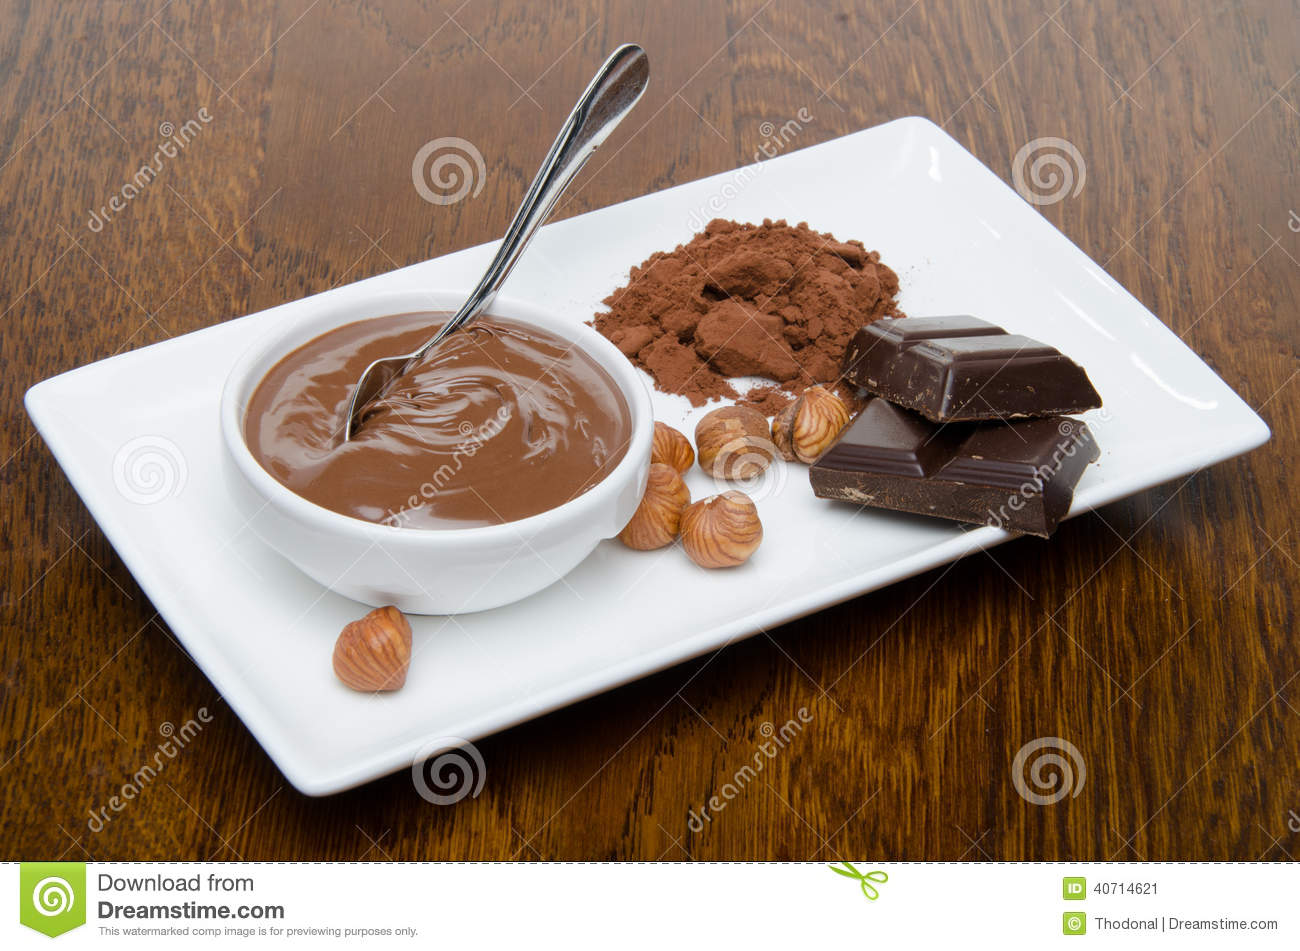 How To Make Chocolate Spread Using Cocoa Powder